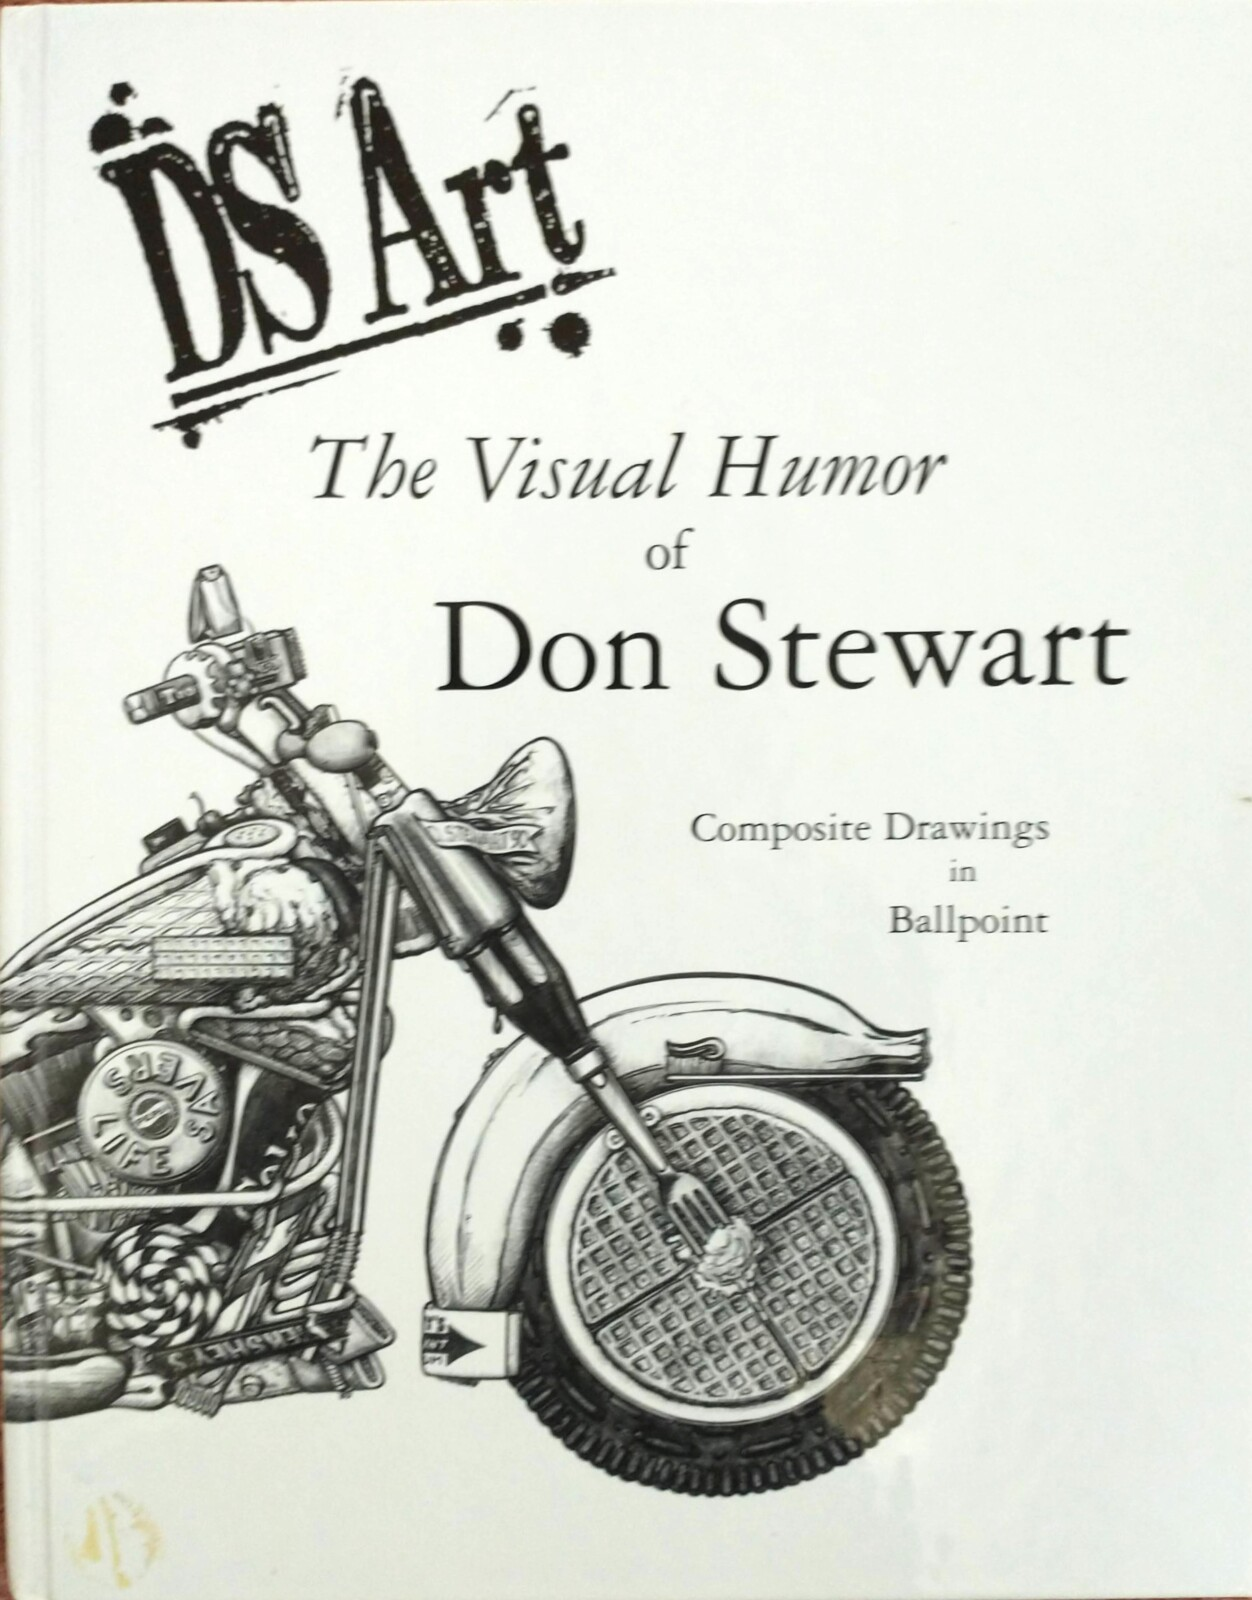 DS Art The Visual Humor of Don Stewart